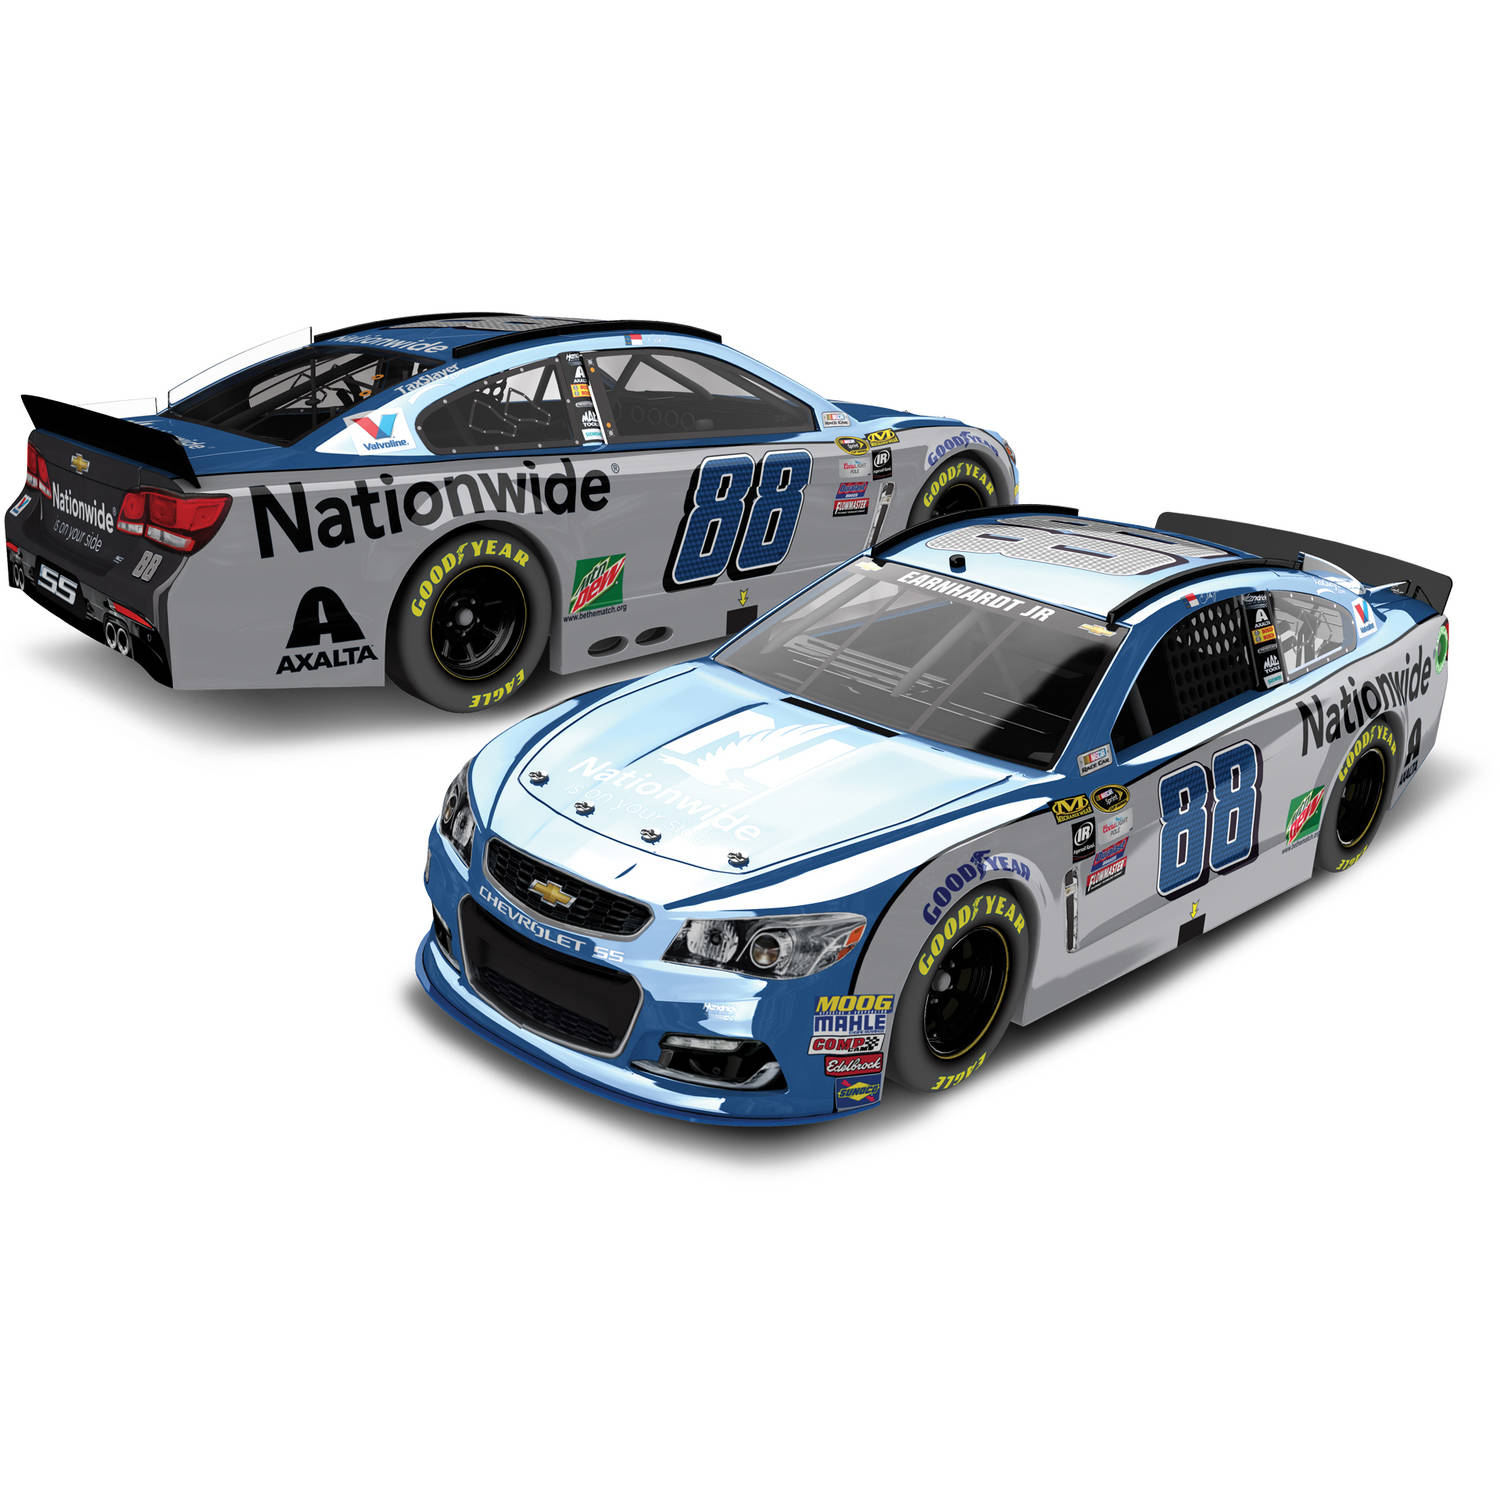 Action Racing Dale Earnhardt Jr. 2016 #88 Nationwide 1:24 Nascar Sprint Cup Series Color... by Generic